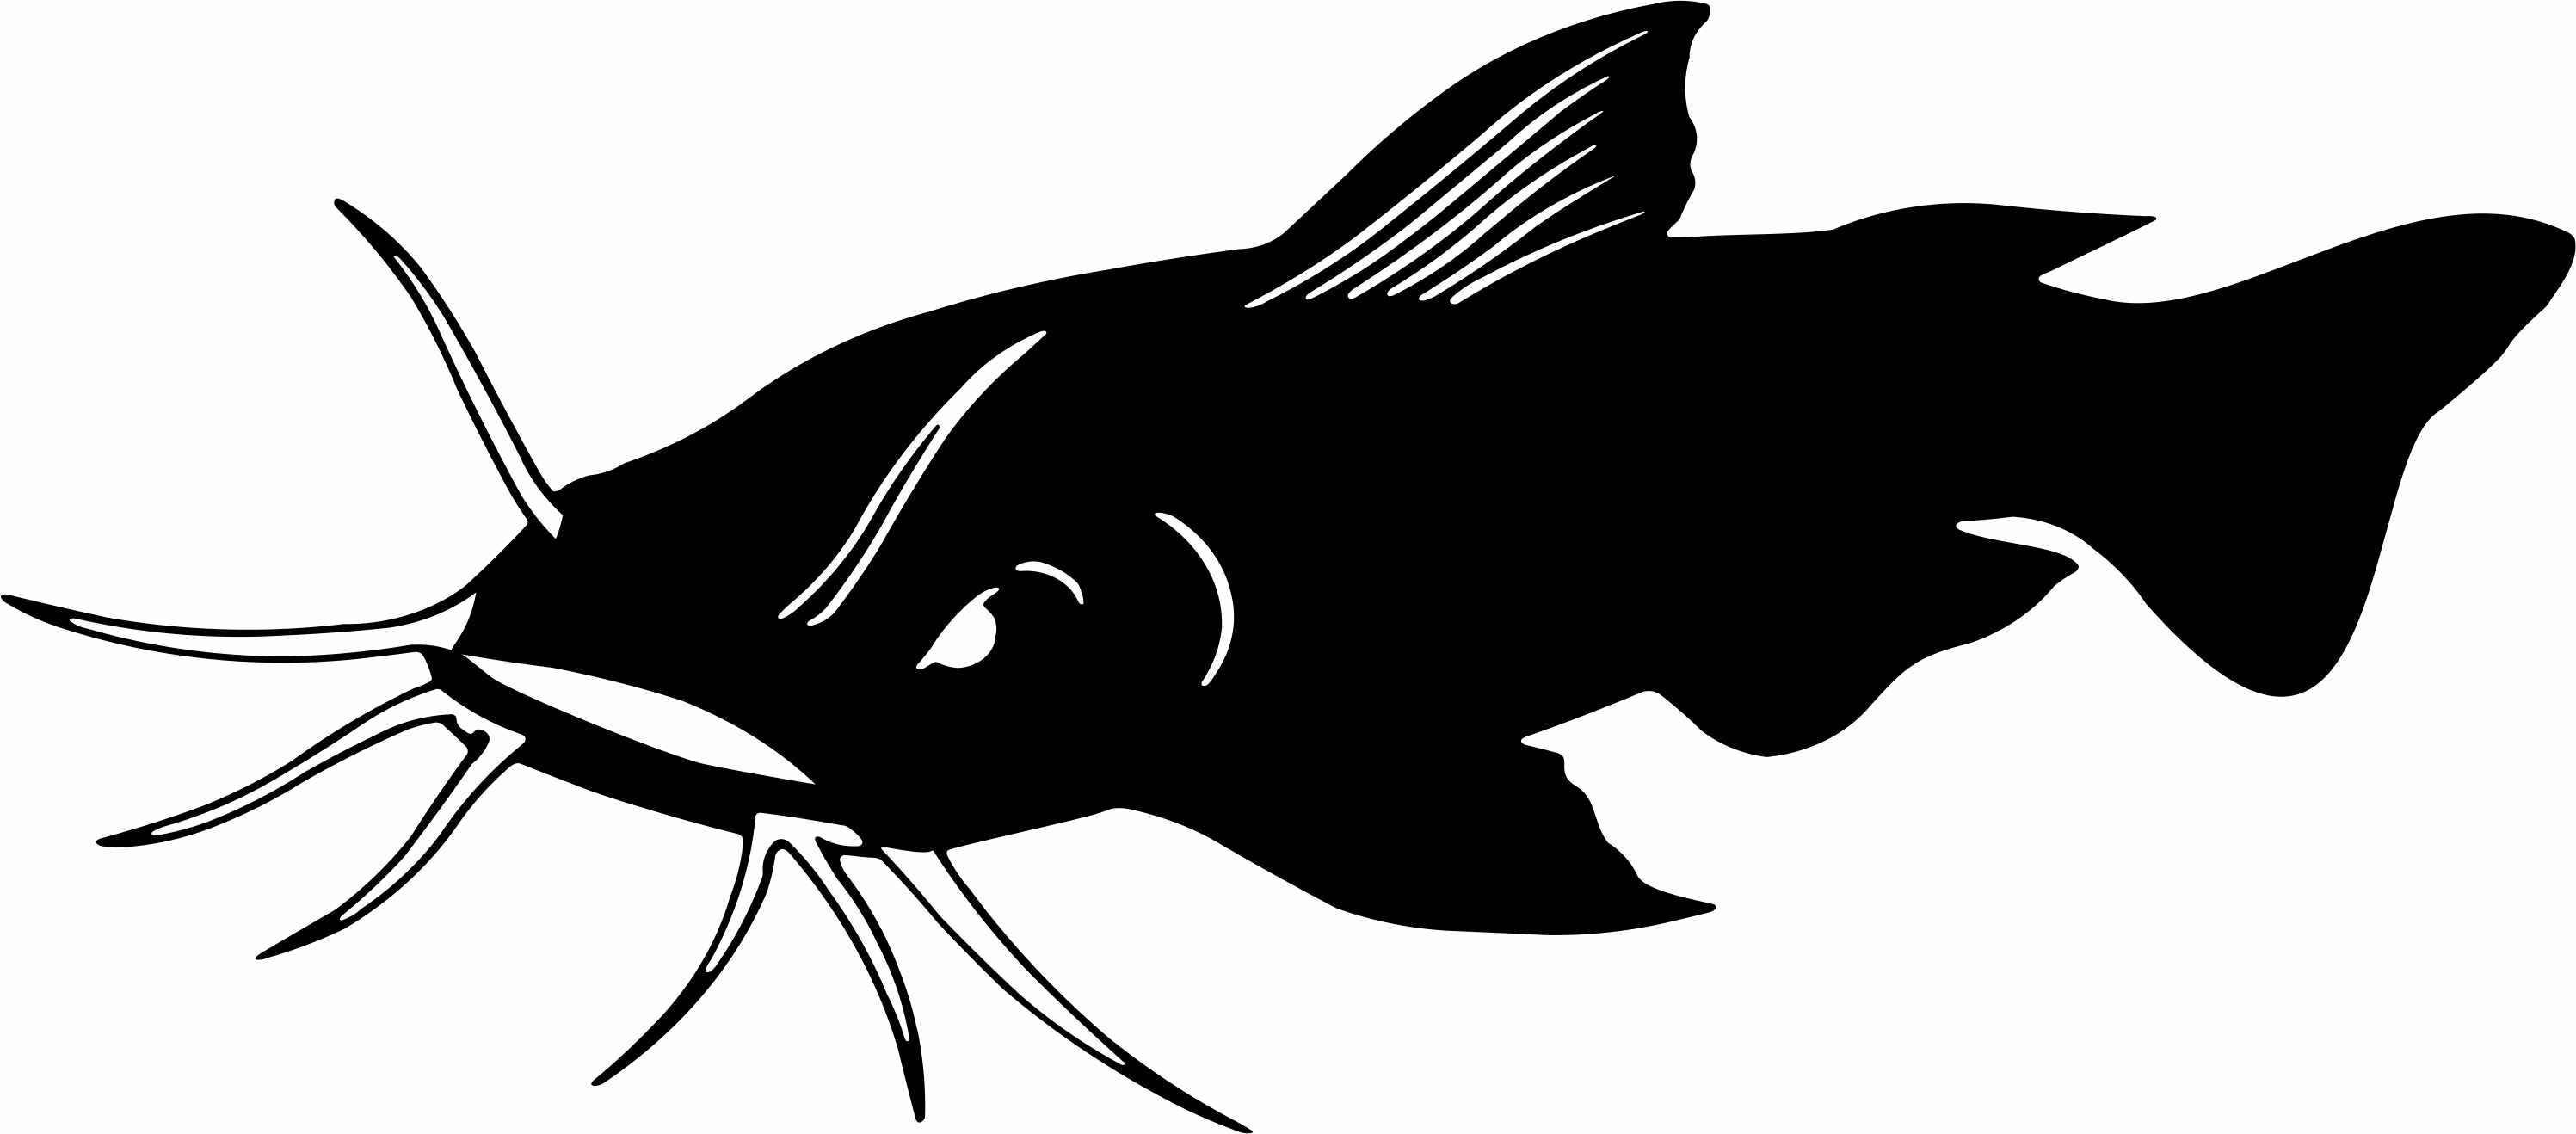 Catfish logo clipart image free Pin by laura rose on prints | Fish clipart, Fish stencil, Fish graphic image free